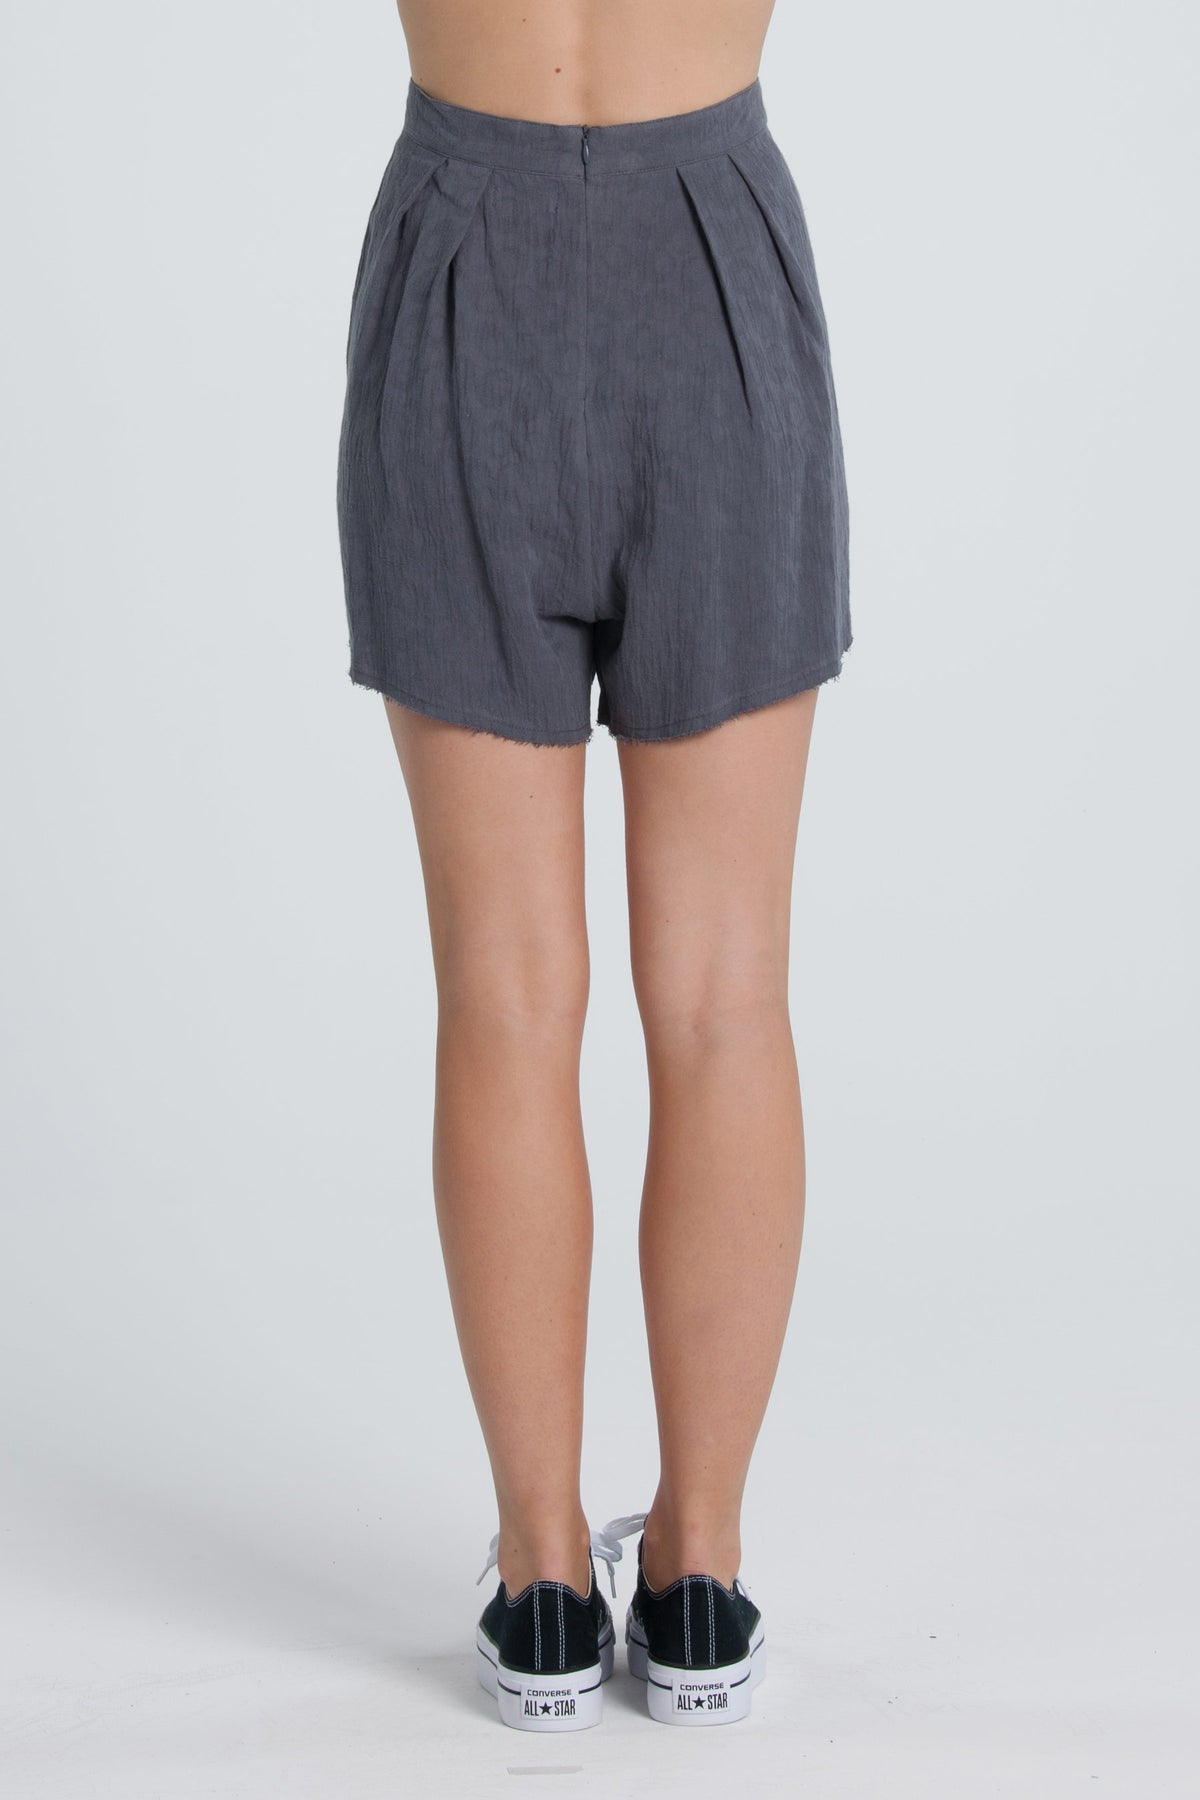 Layla Shorts - Grey